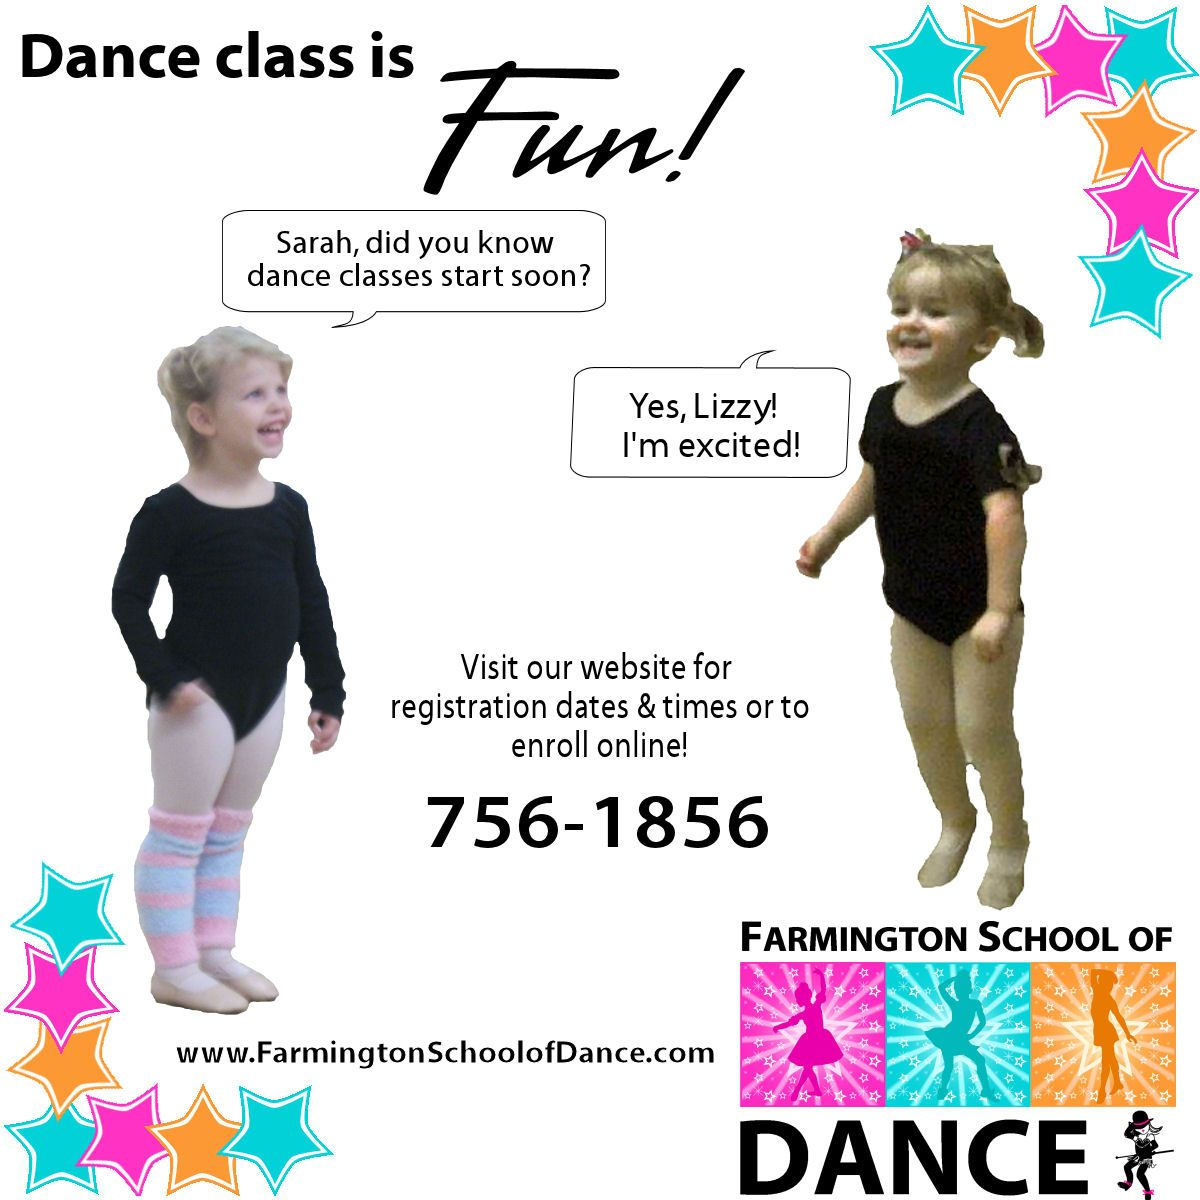 Register Next Week On Tuesday Wednesday Or Thursday 3 30 6 30pm Pin For A Chance To Win See Our Facebook Promotional Photo School Farmington Dance Class